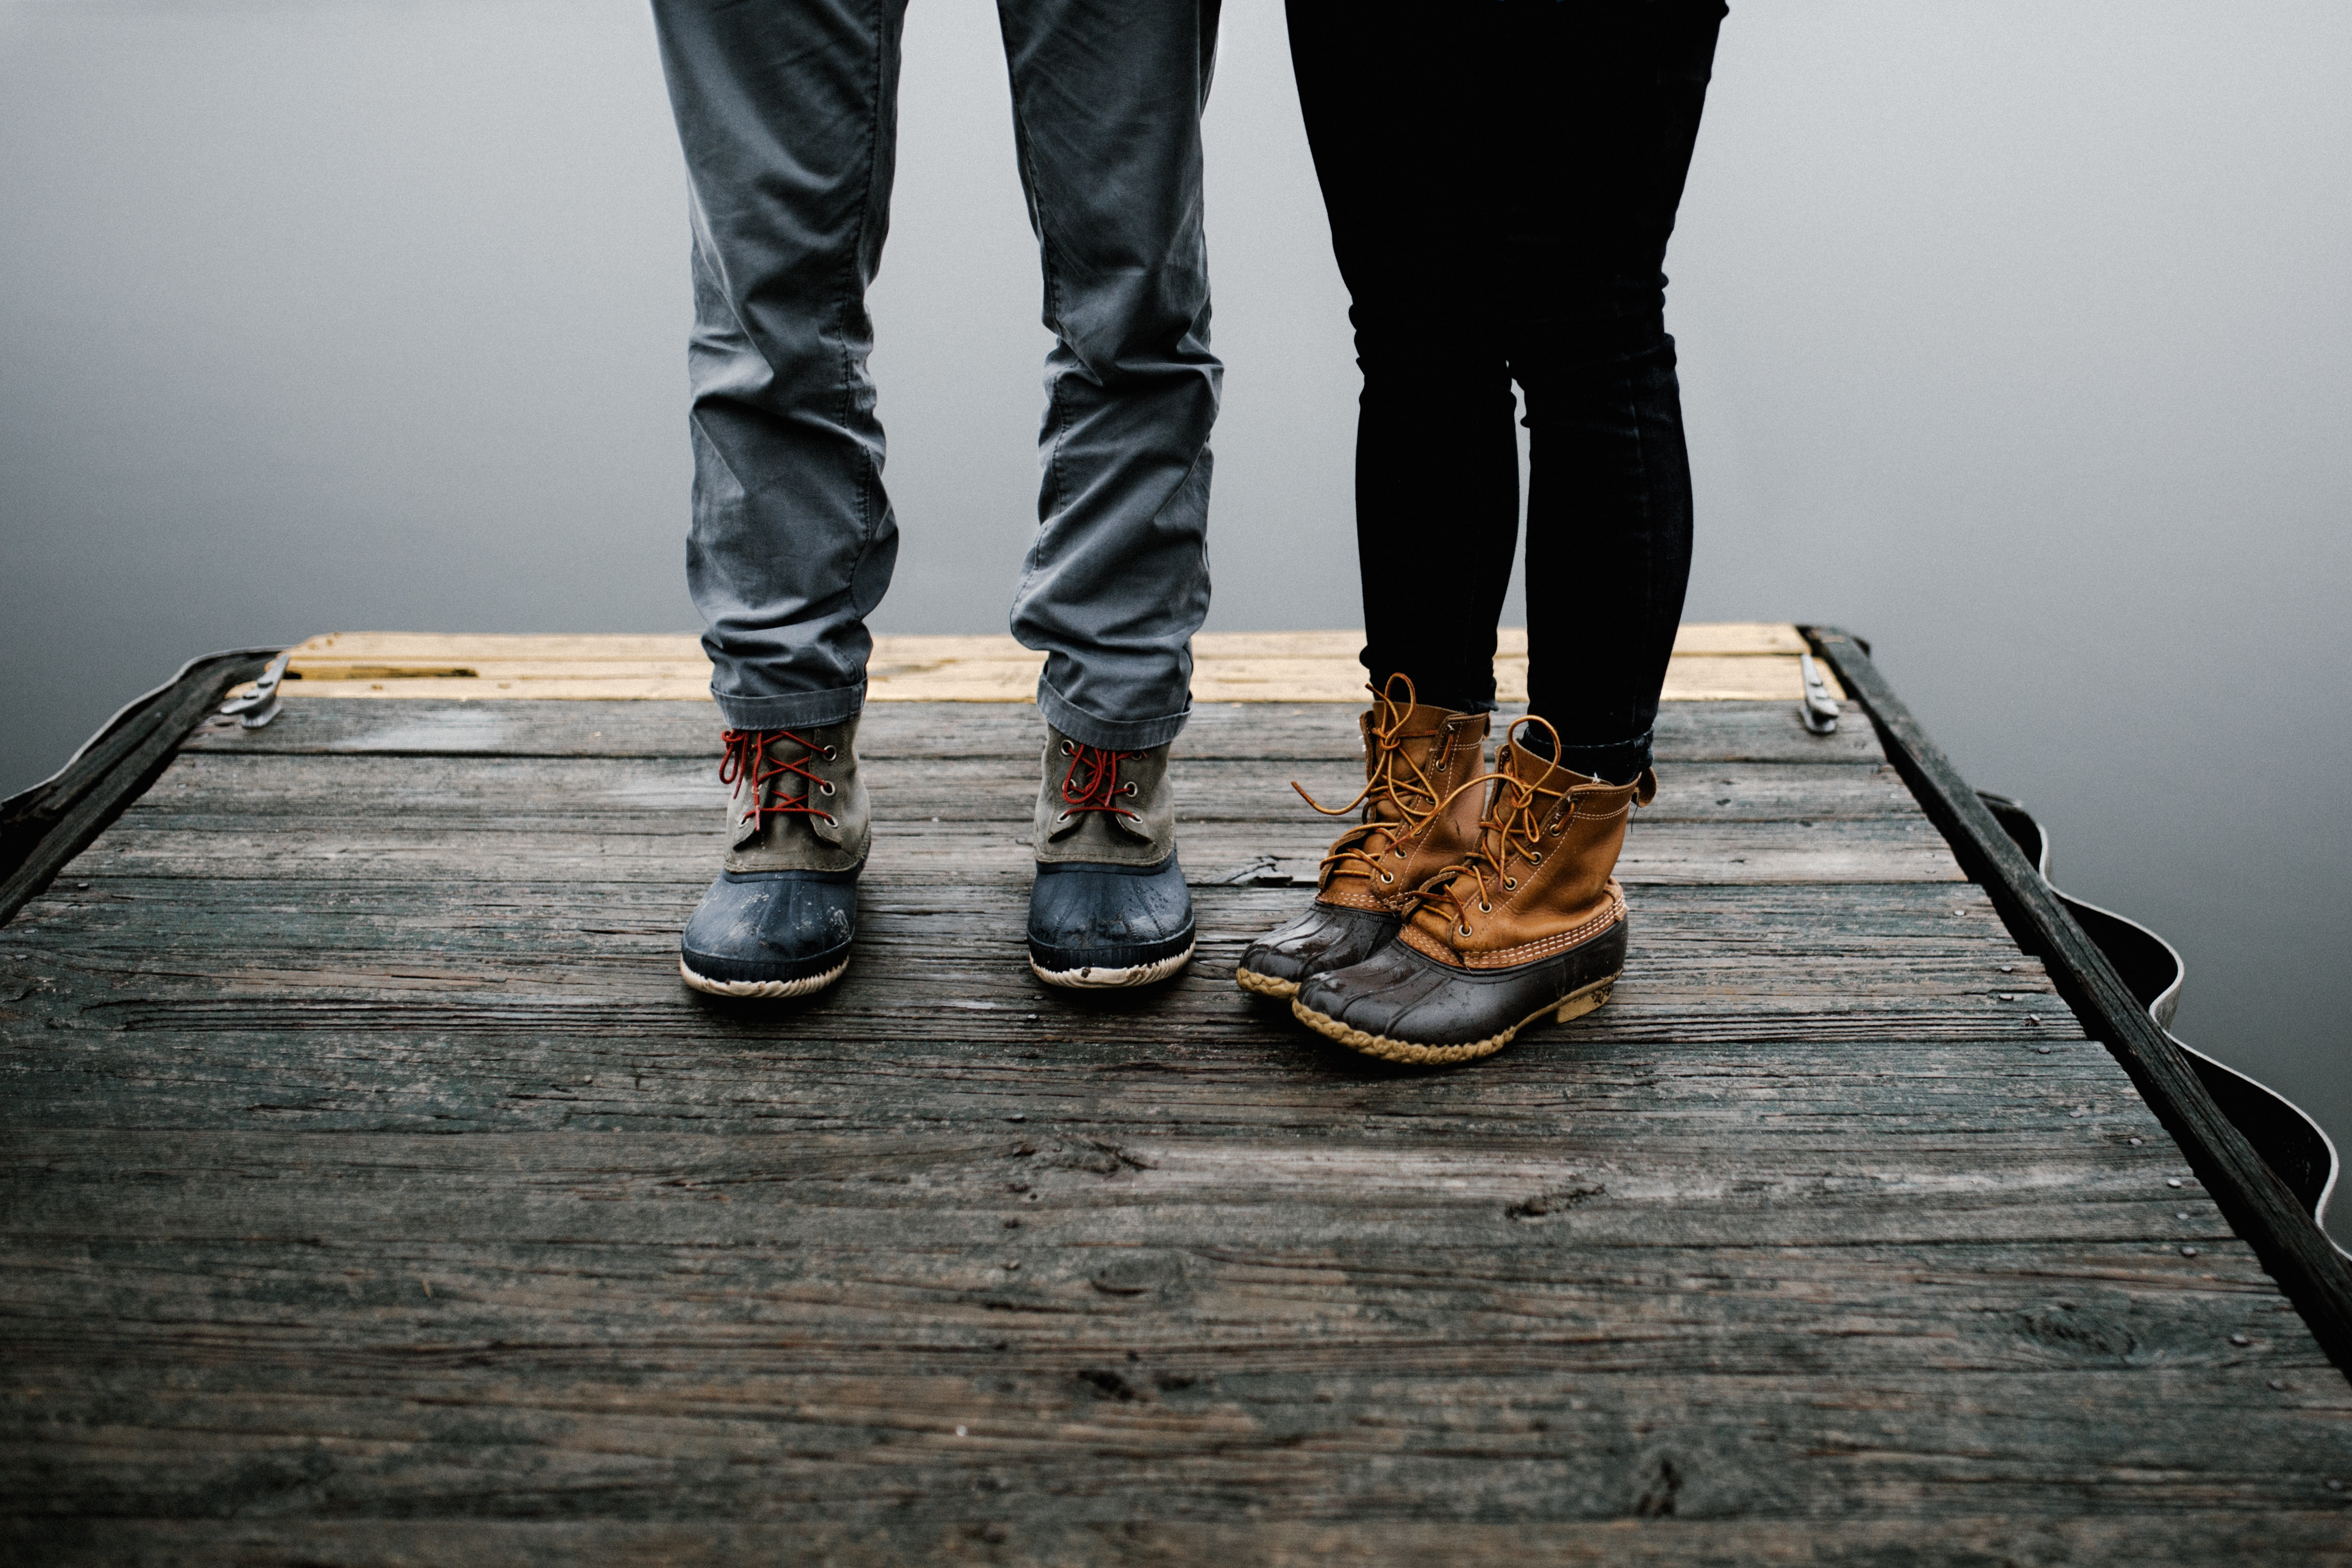 Impermeable shoes worn by a young couple standing on a pier